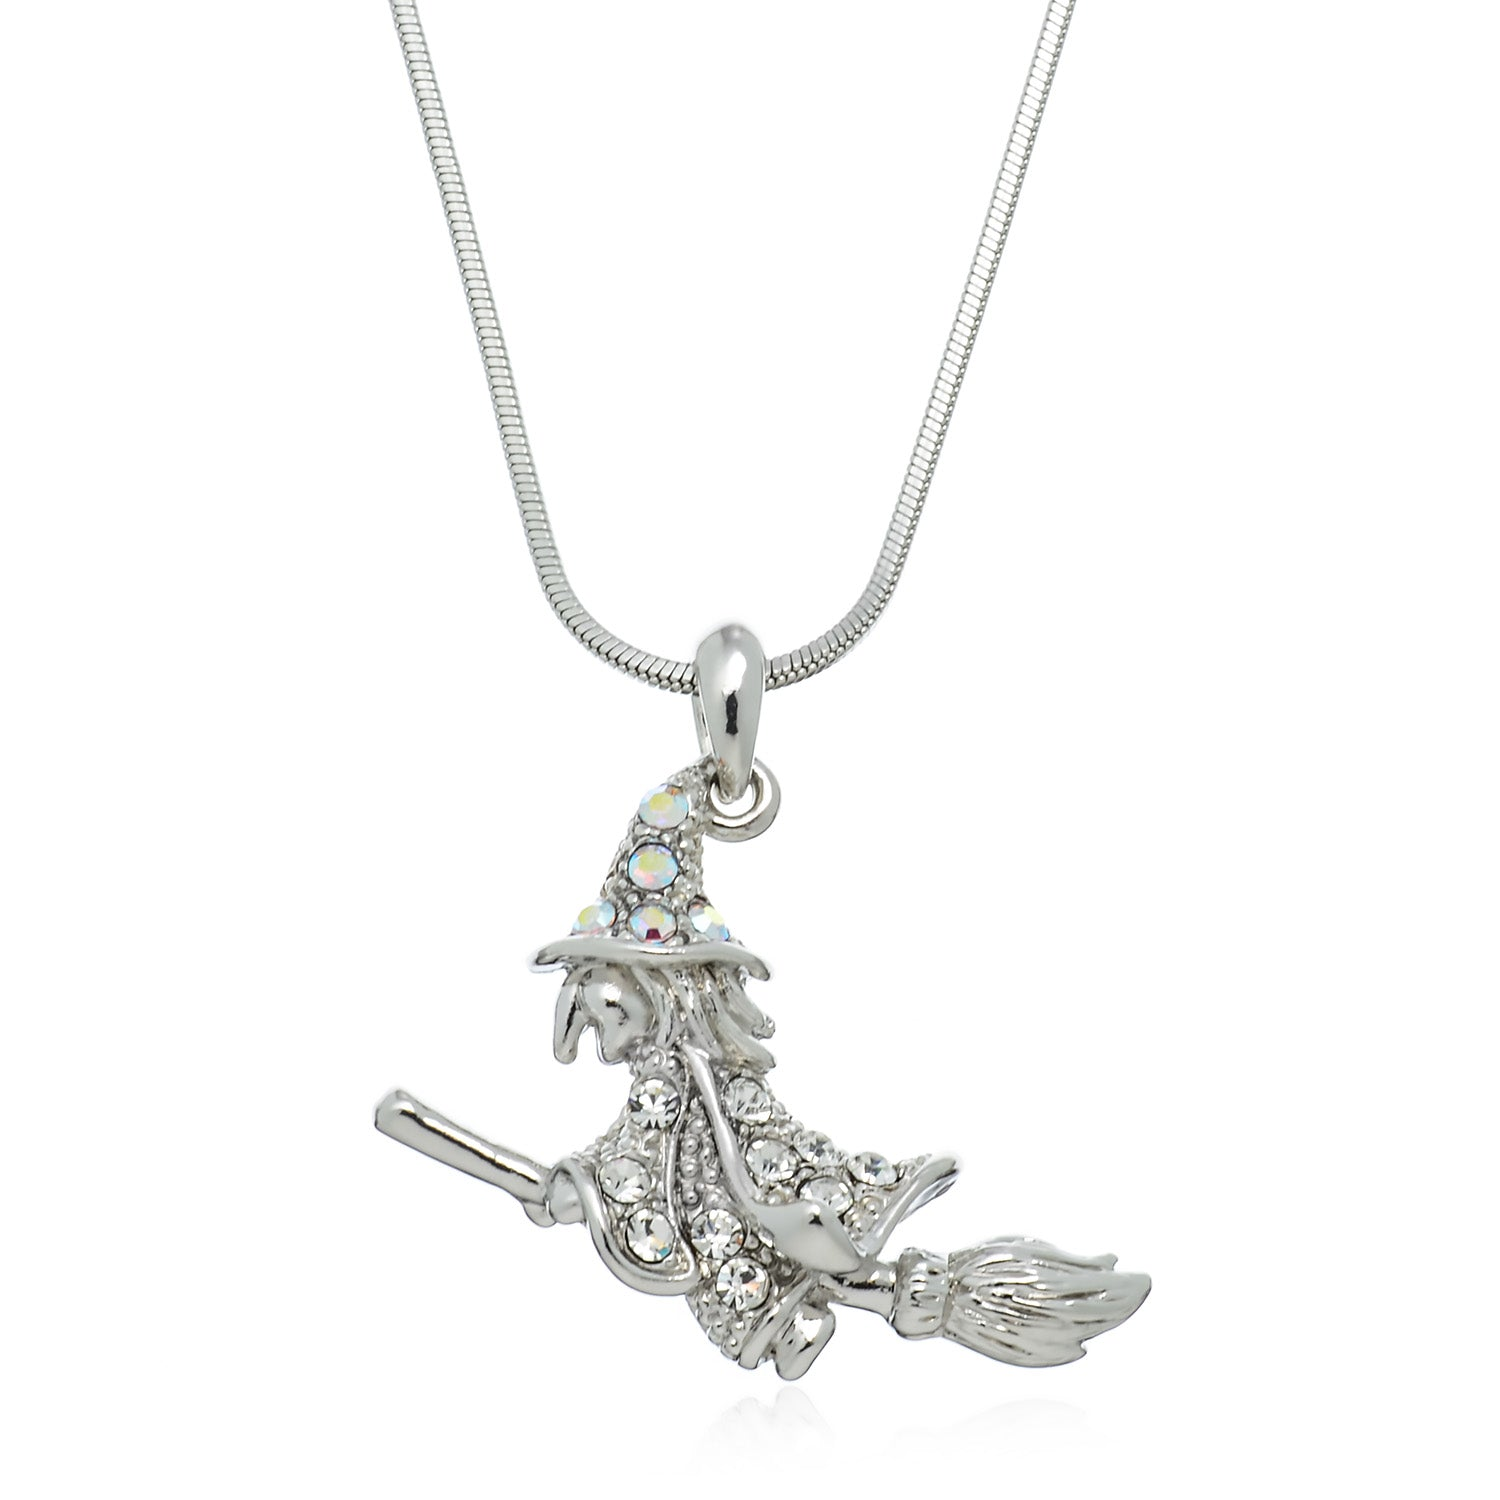 Pammyj silvertone wicked witch crystal pendant necklace 21728 pammyj silvertone wicked witch crystal pendant necklace 18 aloadofball Gallery